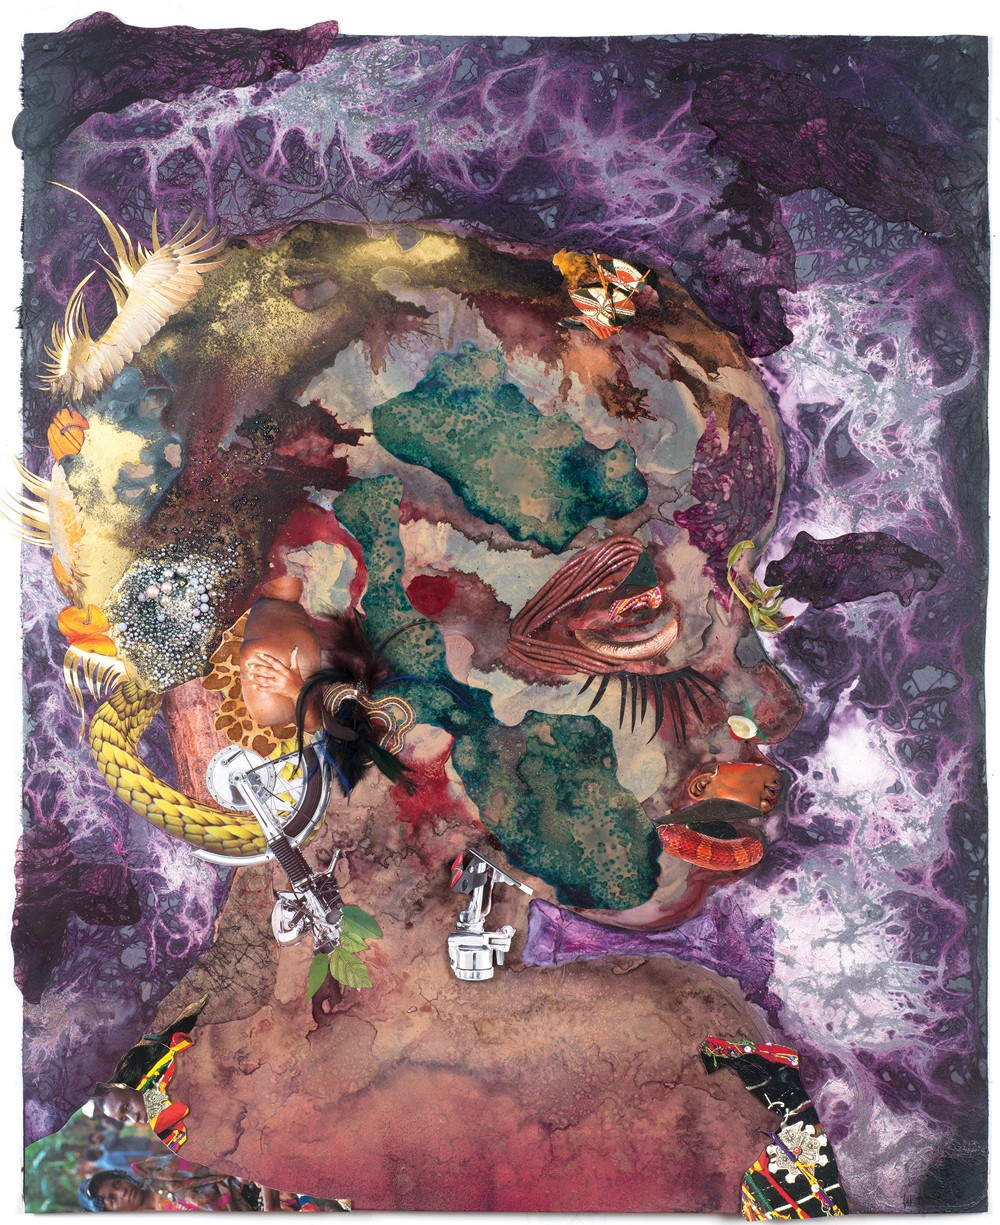 Wangechi Mutu, 'I'm too Misty,' 2015 collage painting on linoleum, 40 x 33 in.